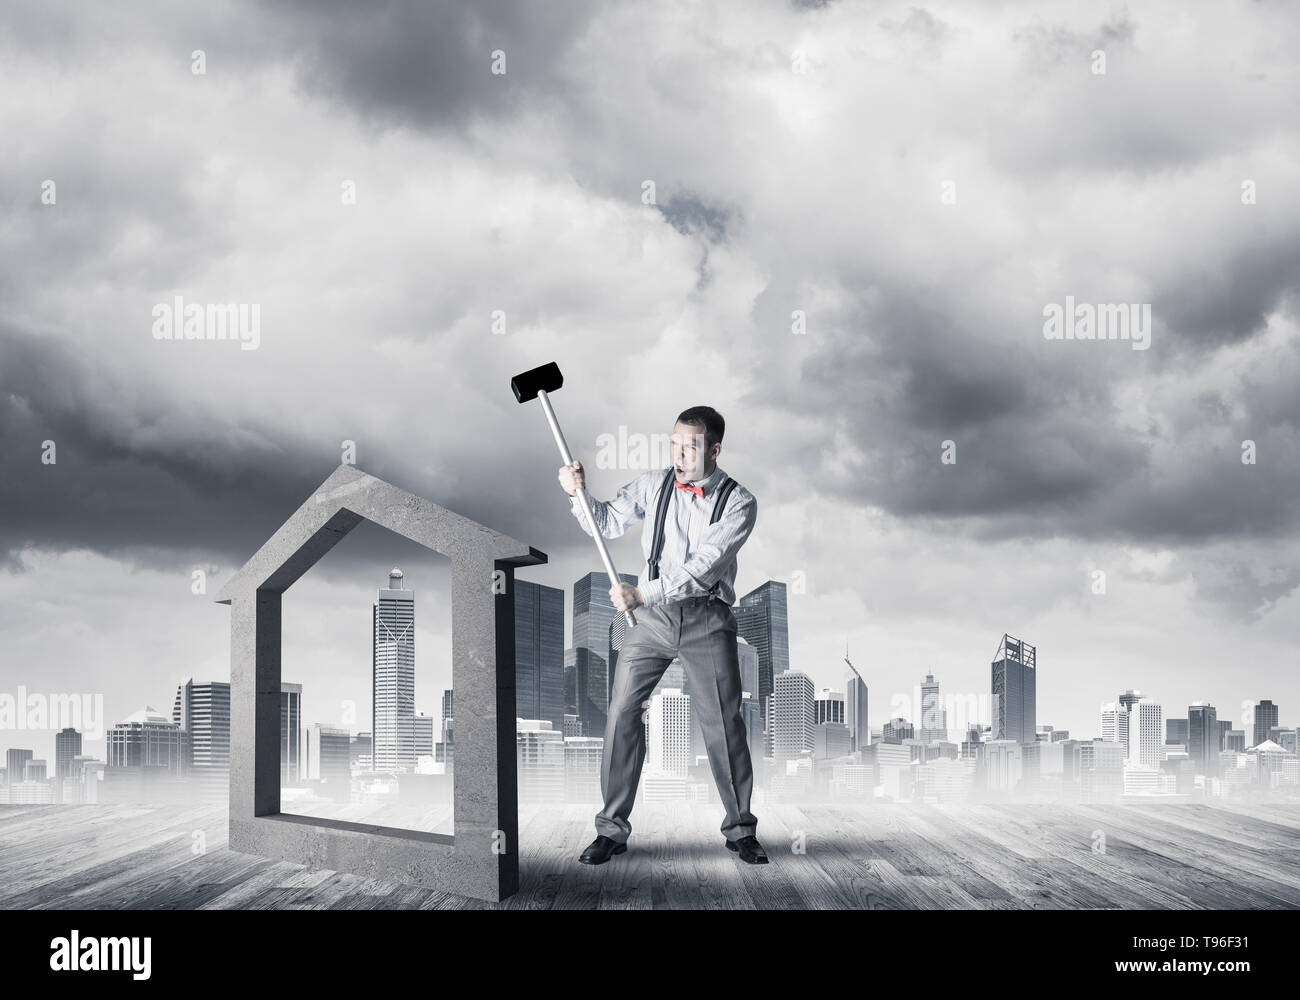 Manager man crashing stone home as symbol for real estate insurance - Stock Image